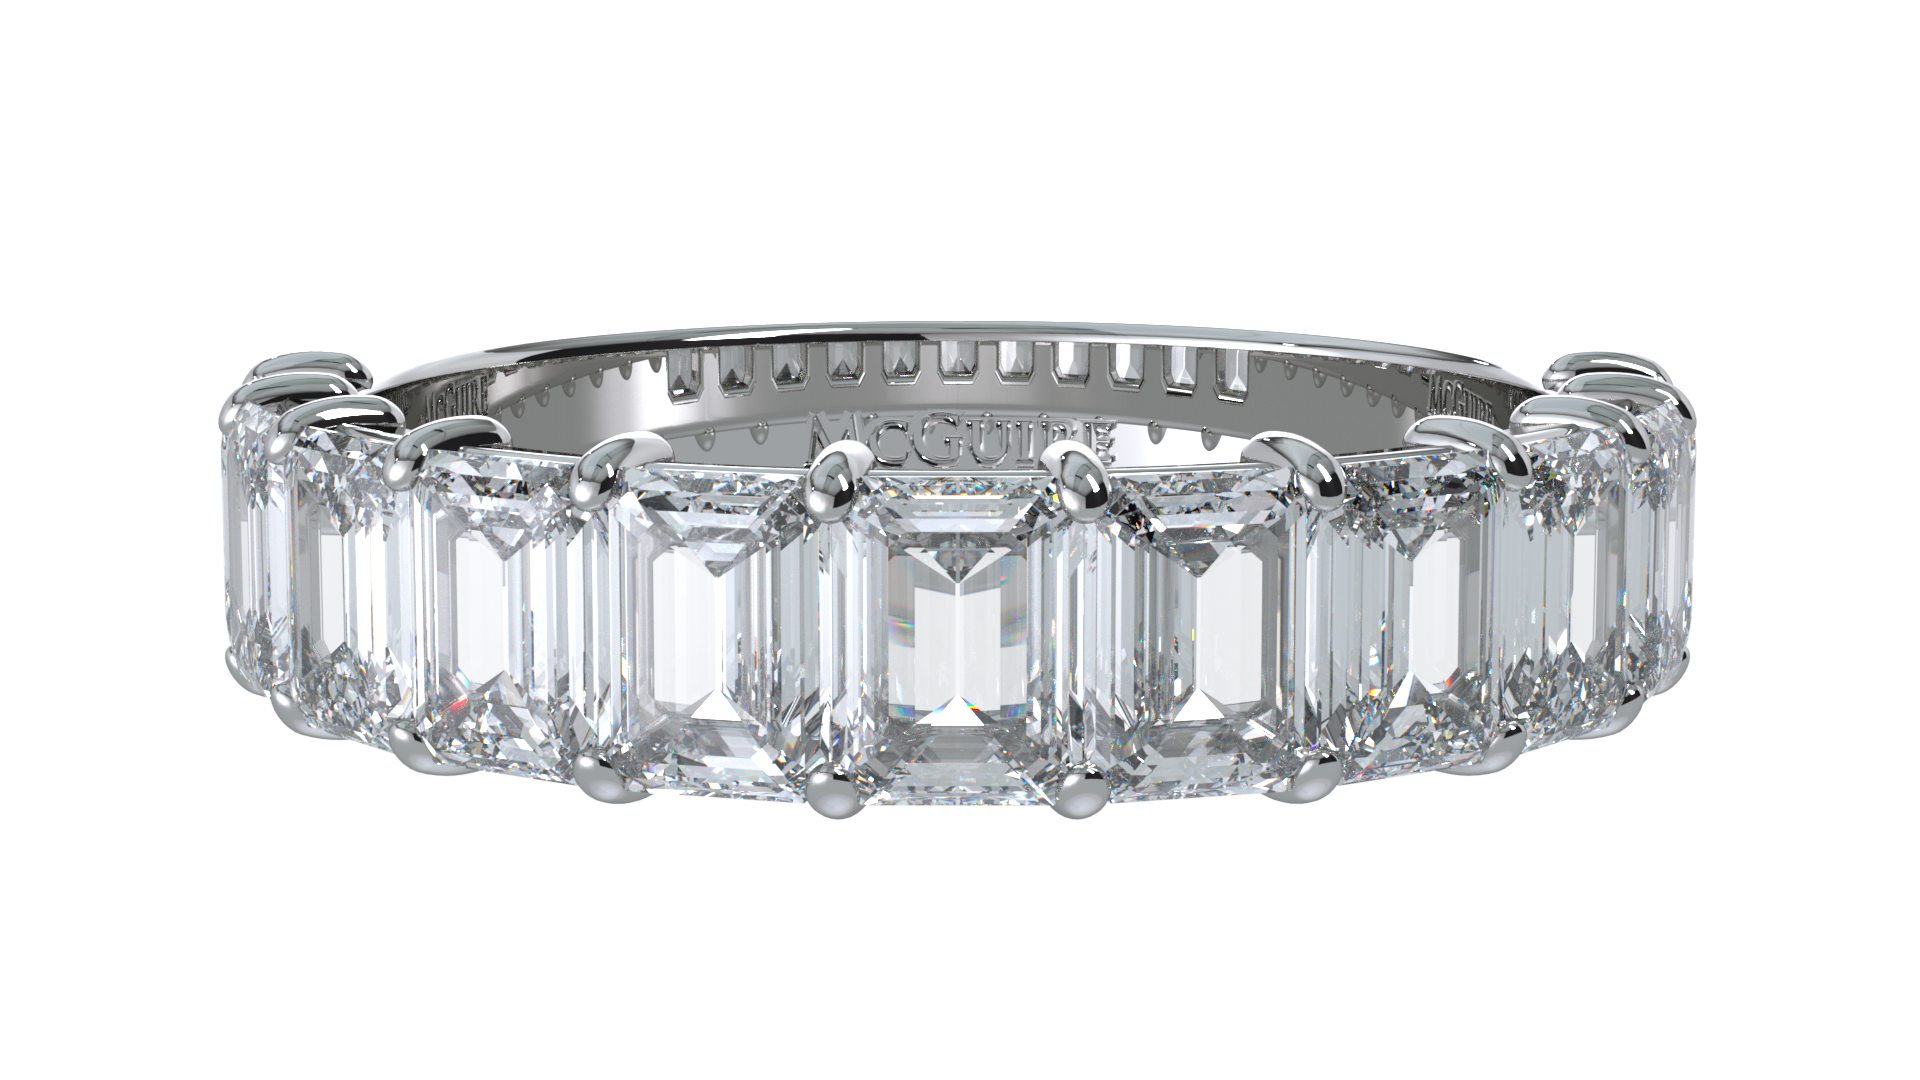 White gold emerald cut eternity ring